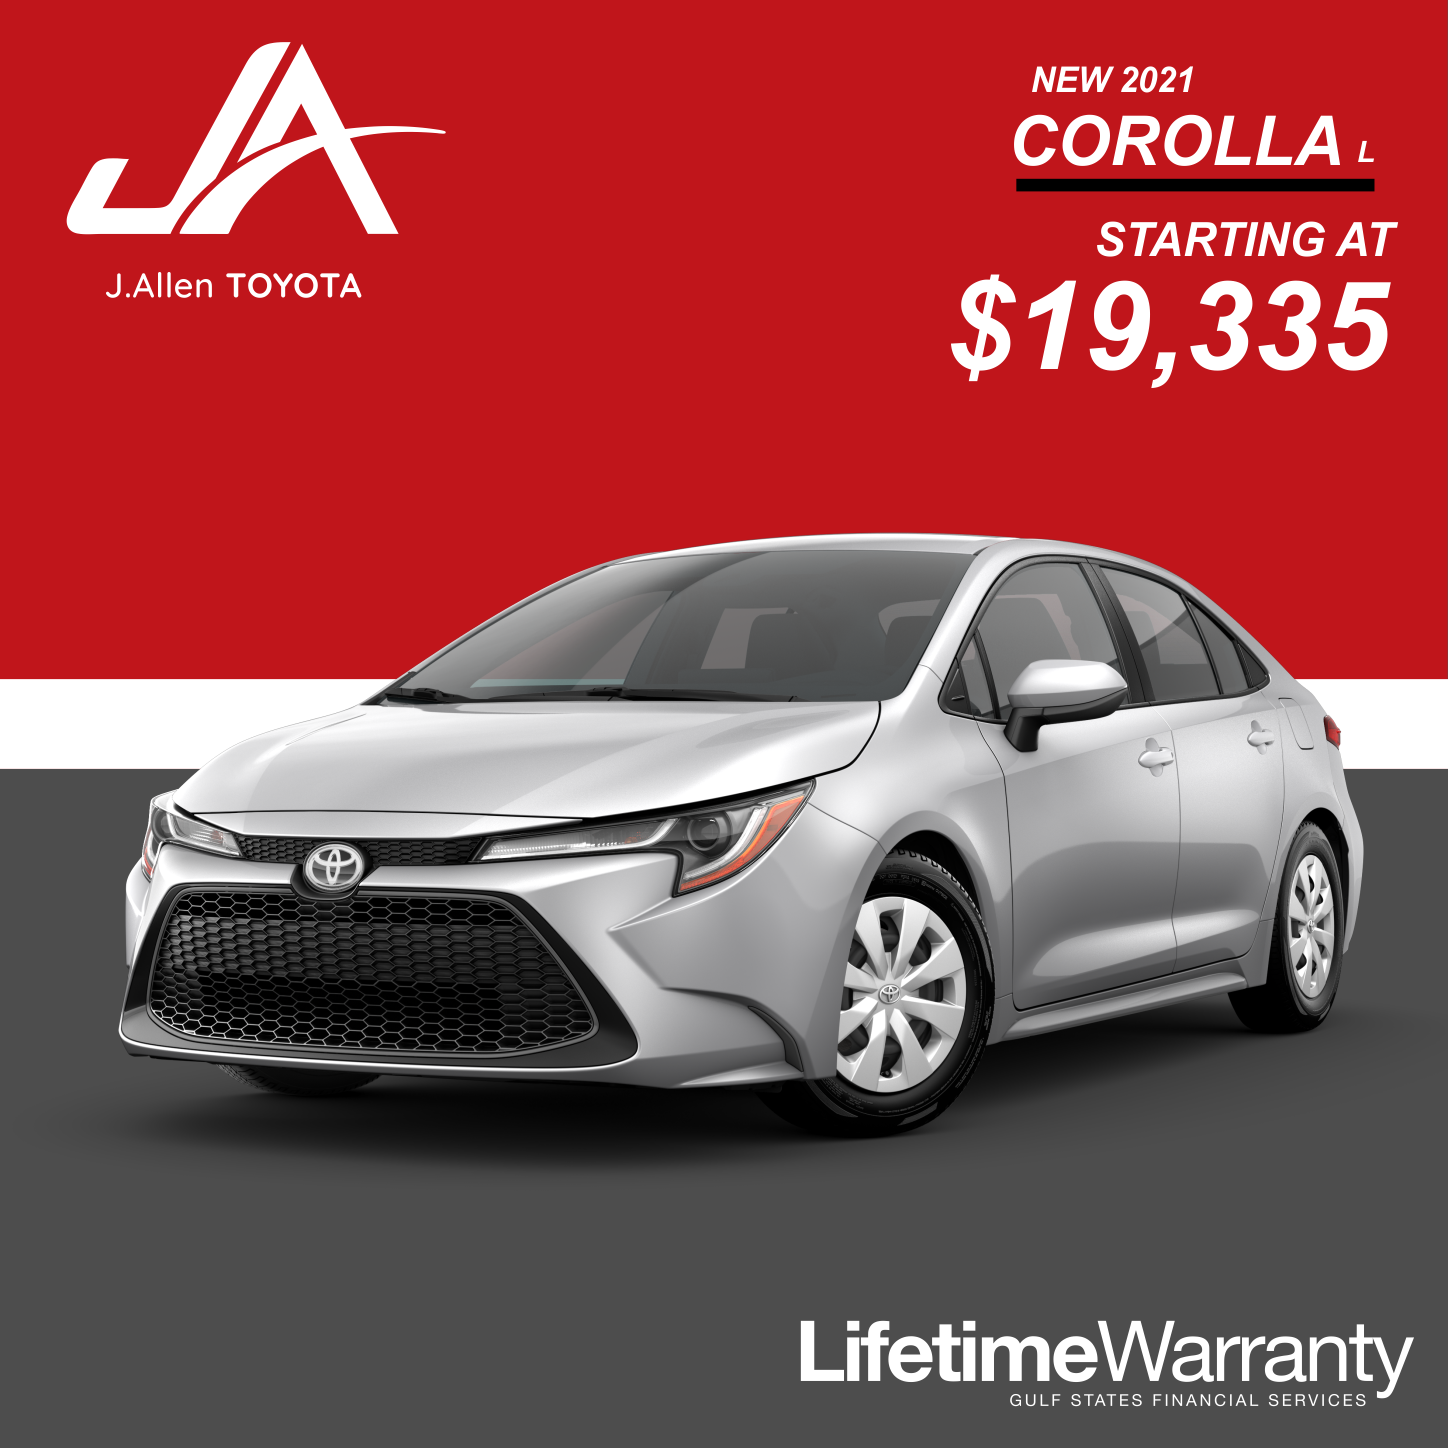 New Corolla Special